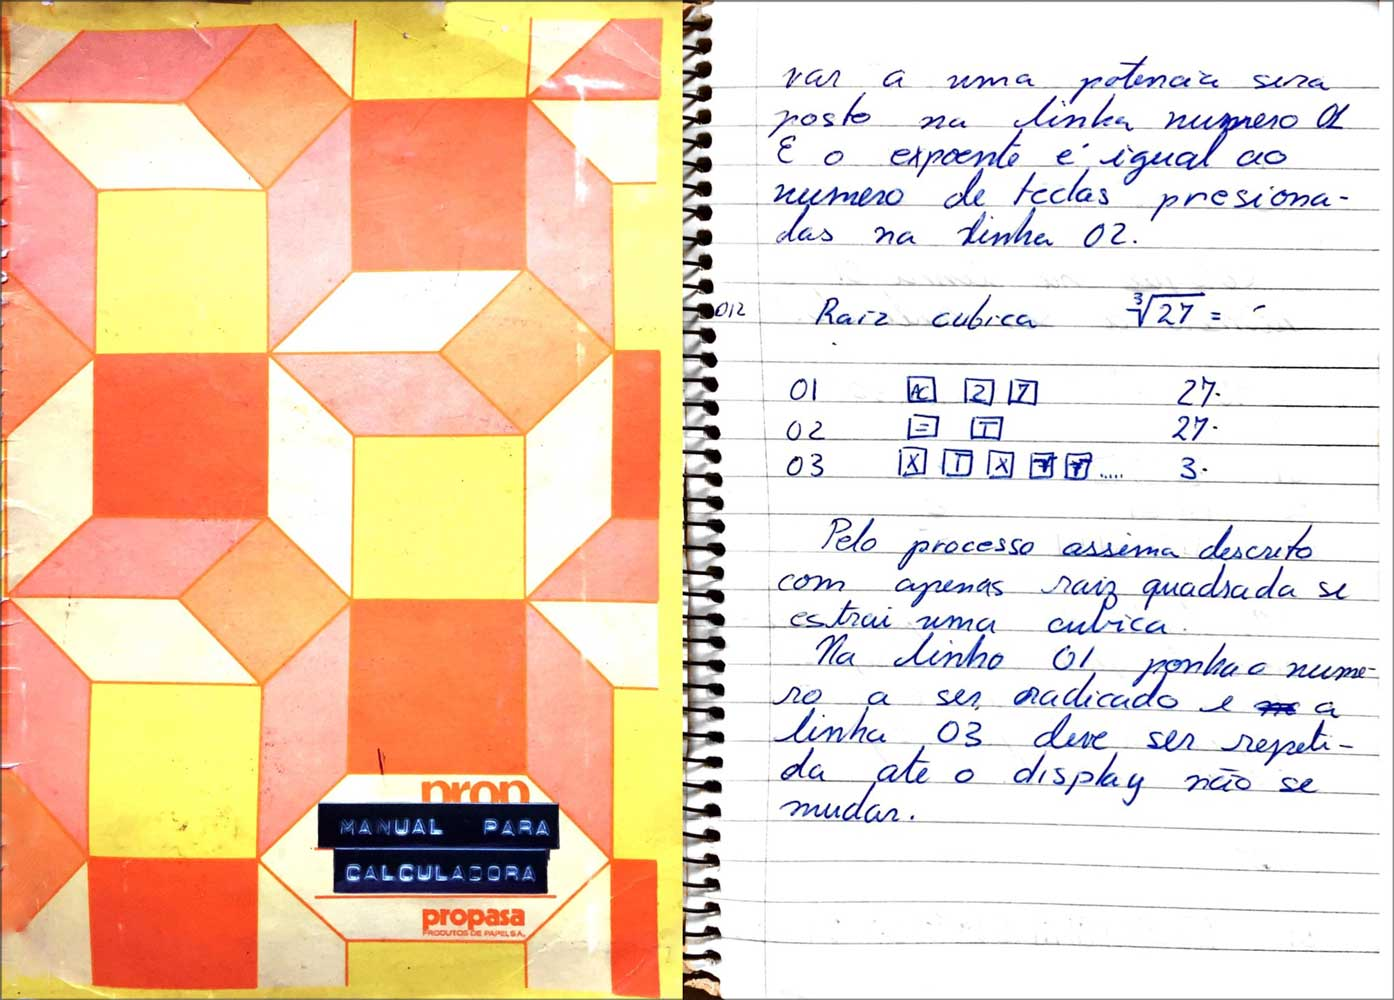 notebook entry